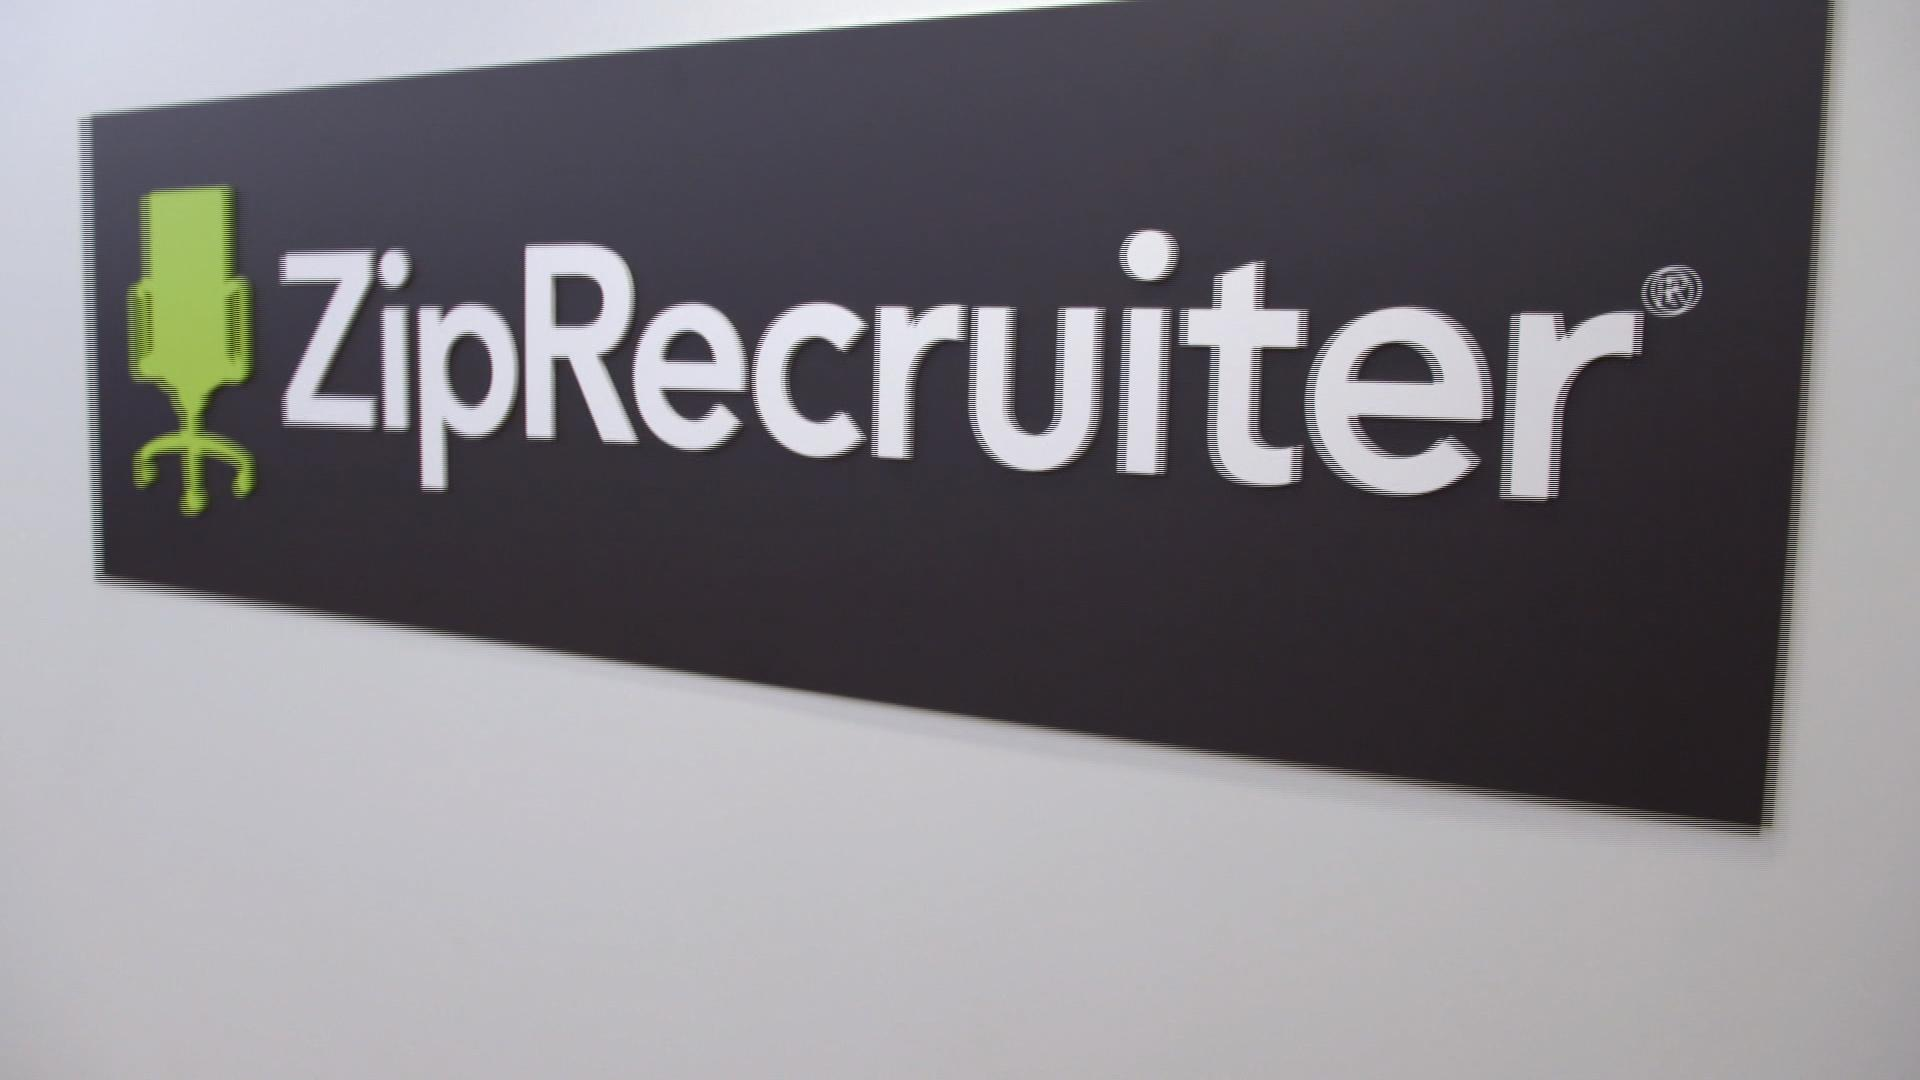 ZipRecruiter is one of the world's leading online employment marketplace